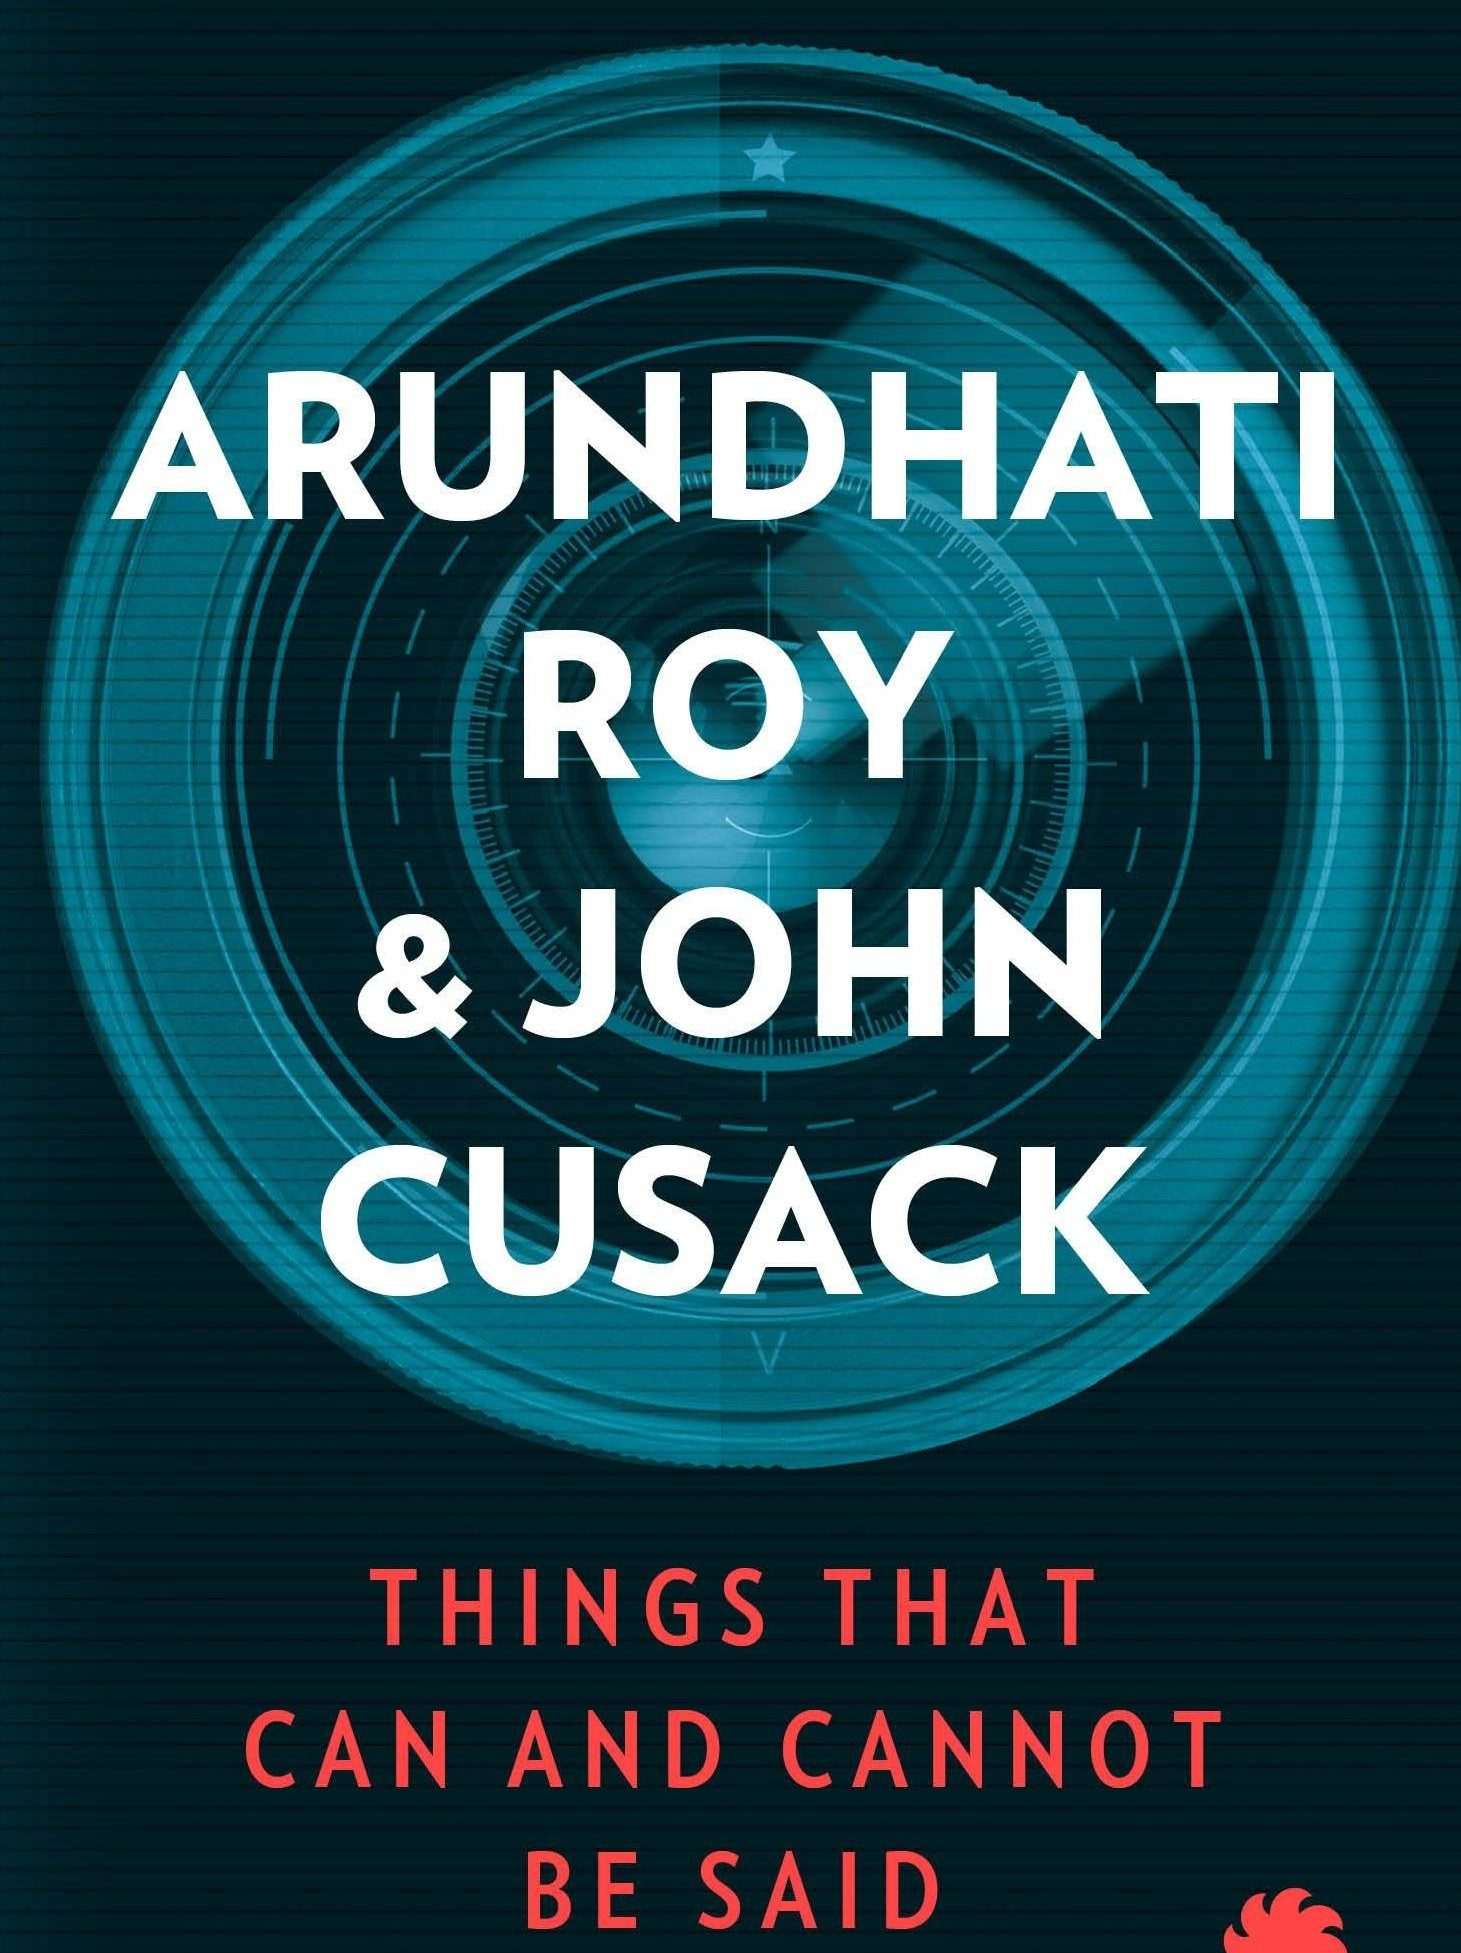 cusack book e1601048173342 20 Things You Never Knew About John Cusack